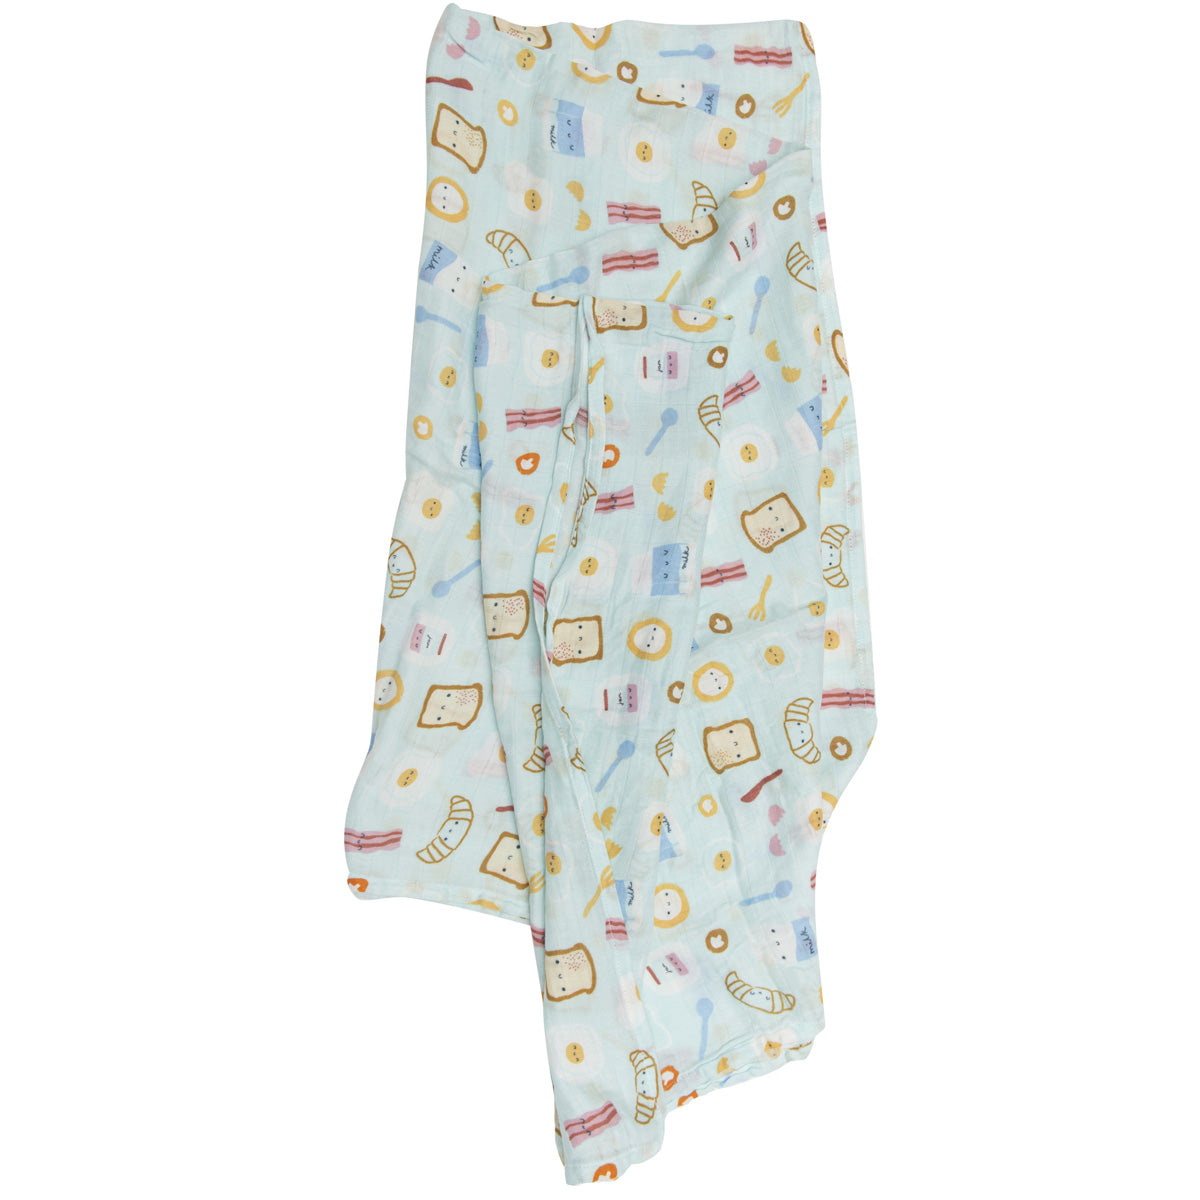 Loulou Lollipop Bamboo Muslin Swaddle Blanket - Breakfast Blue